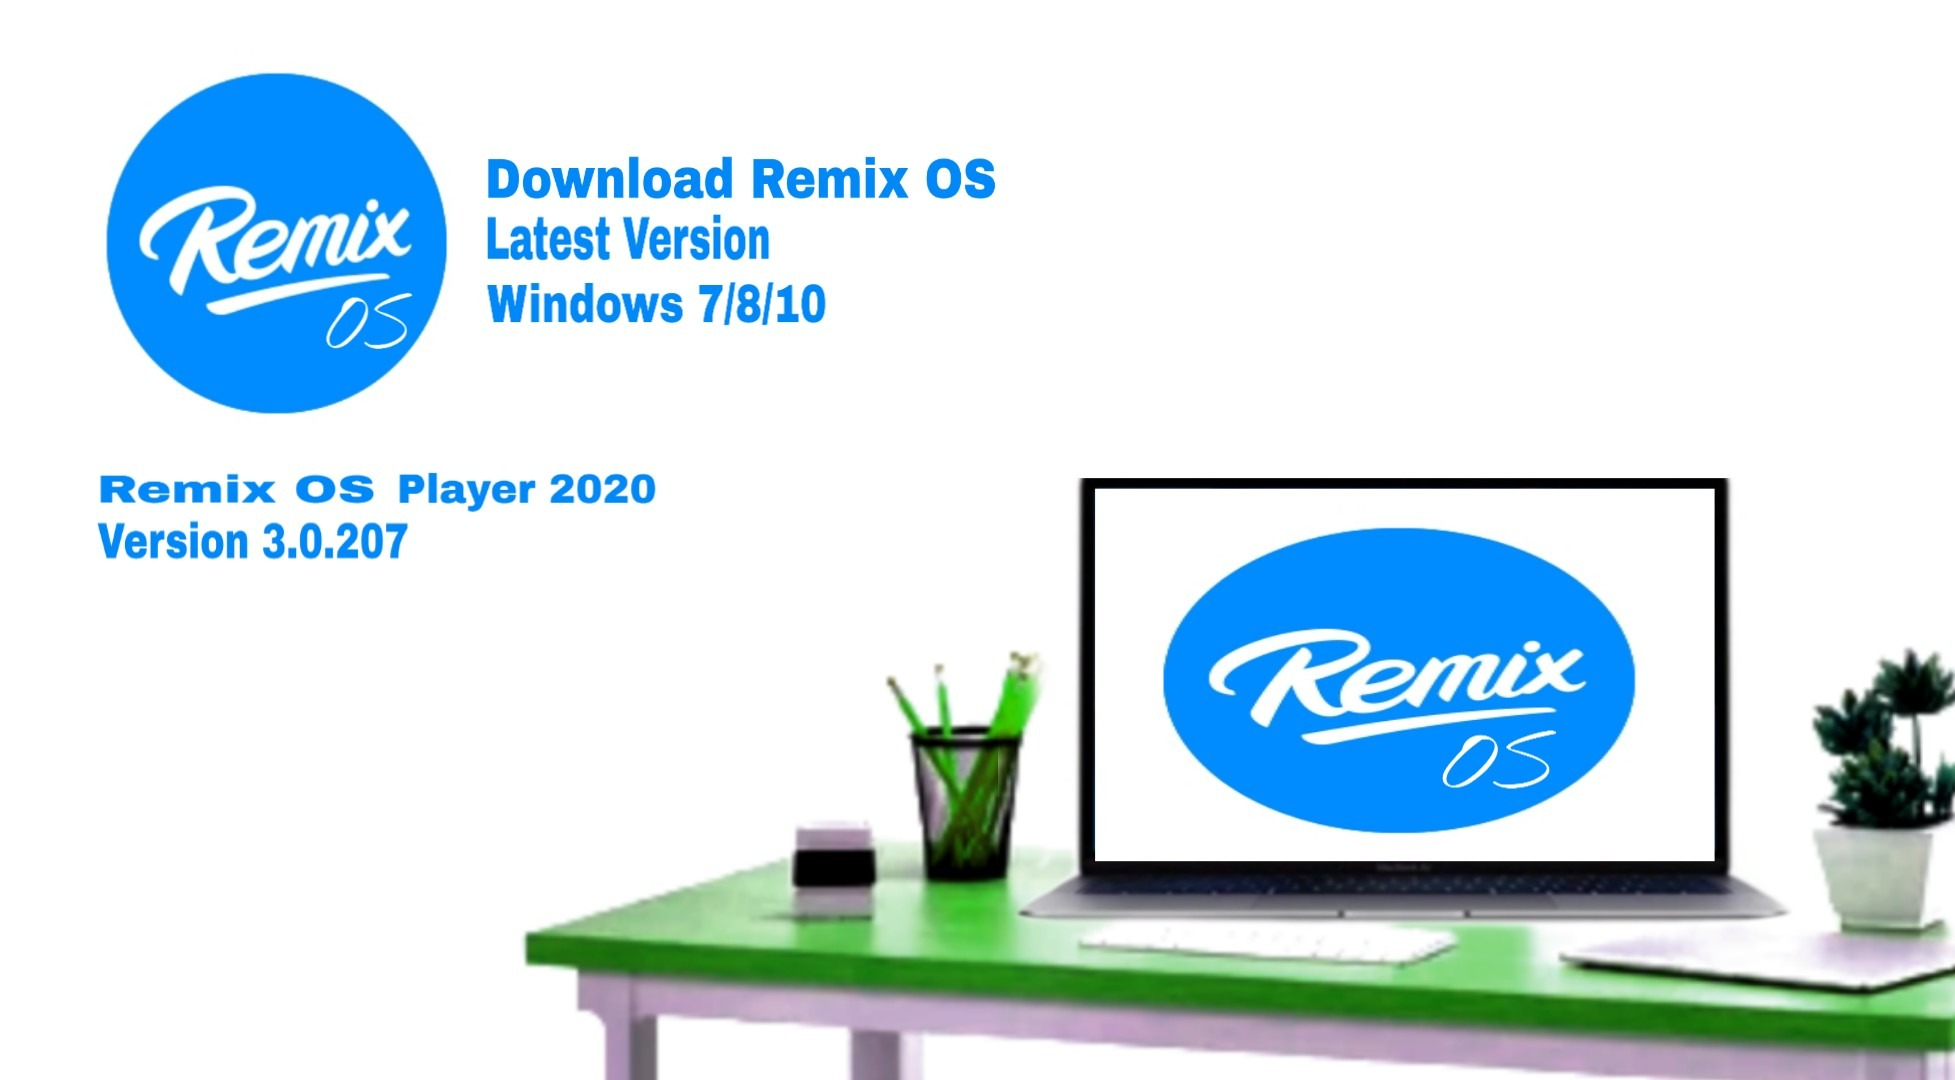 Download Remix OS